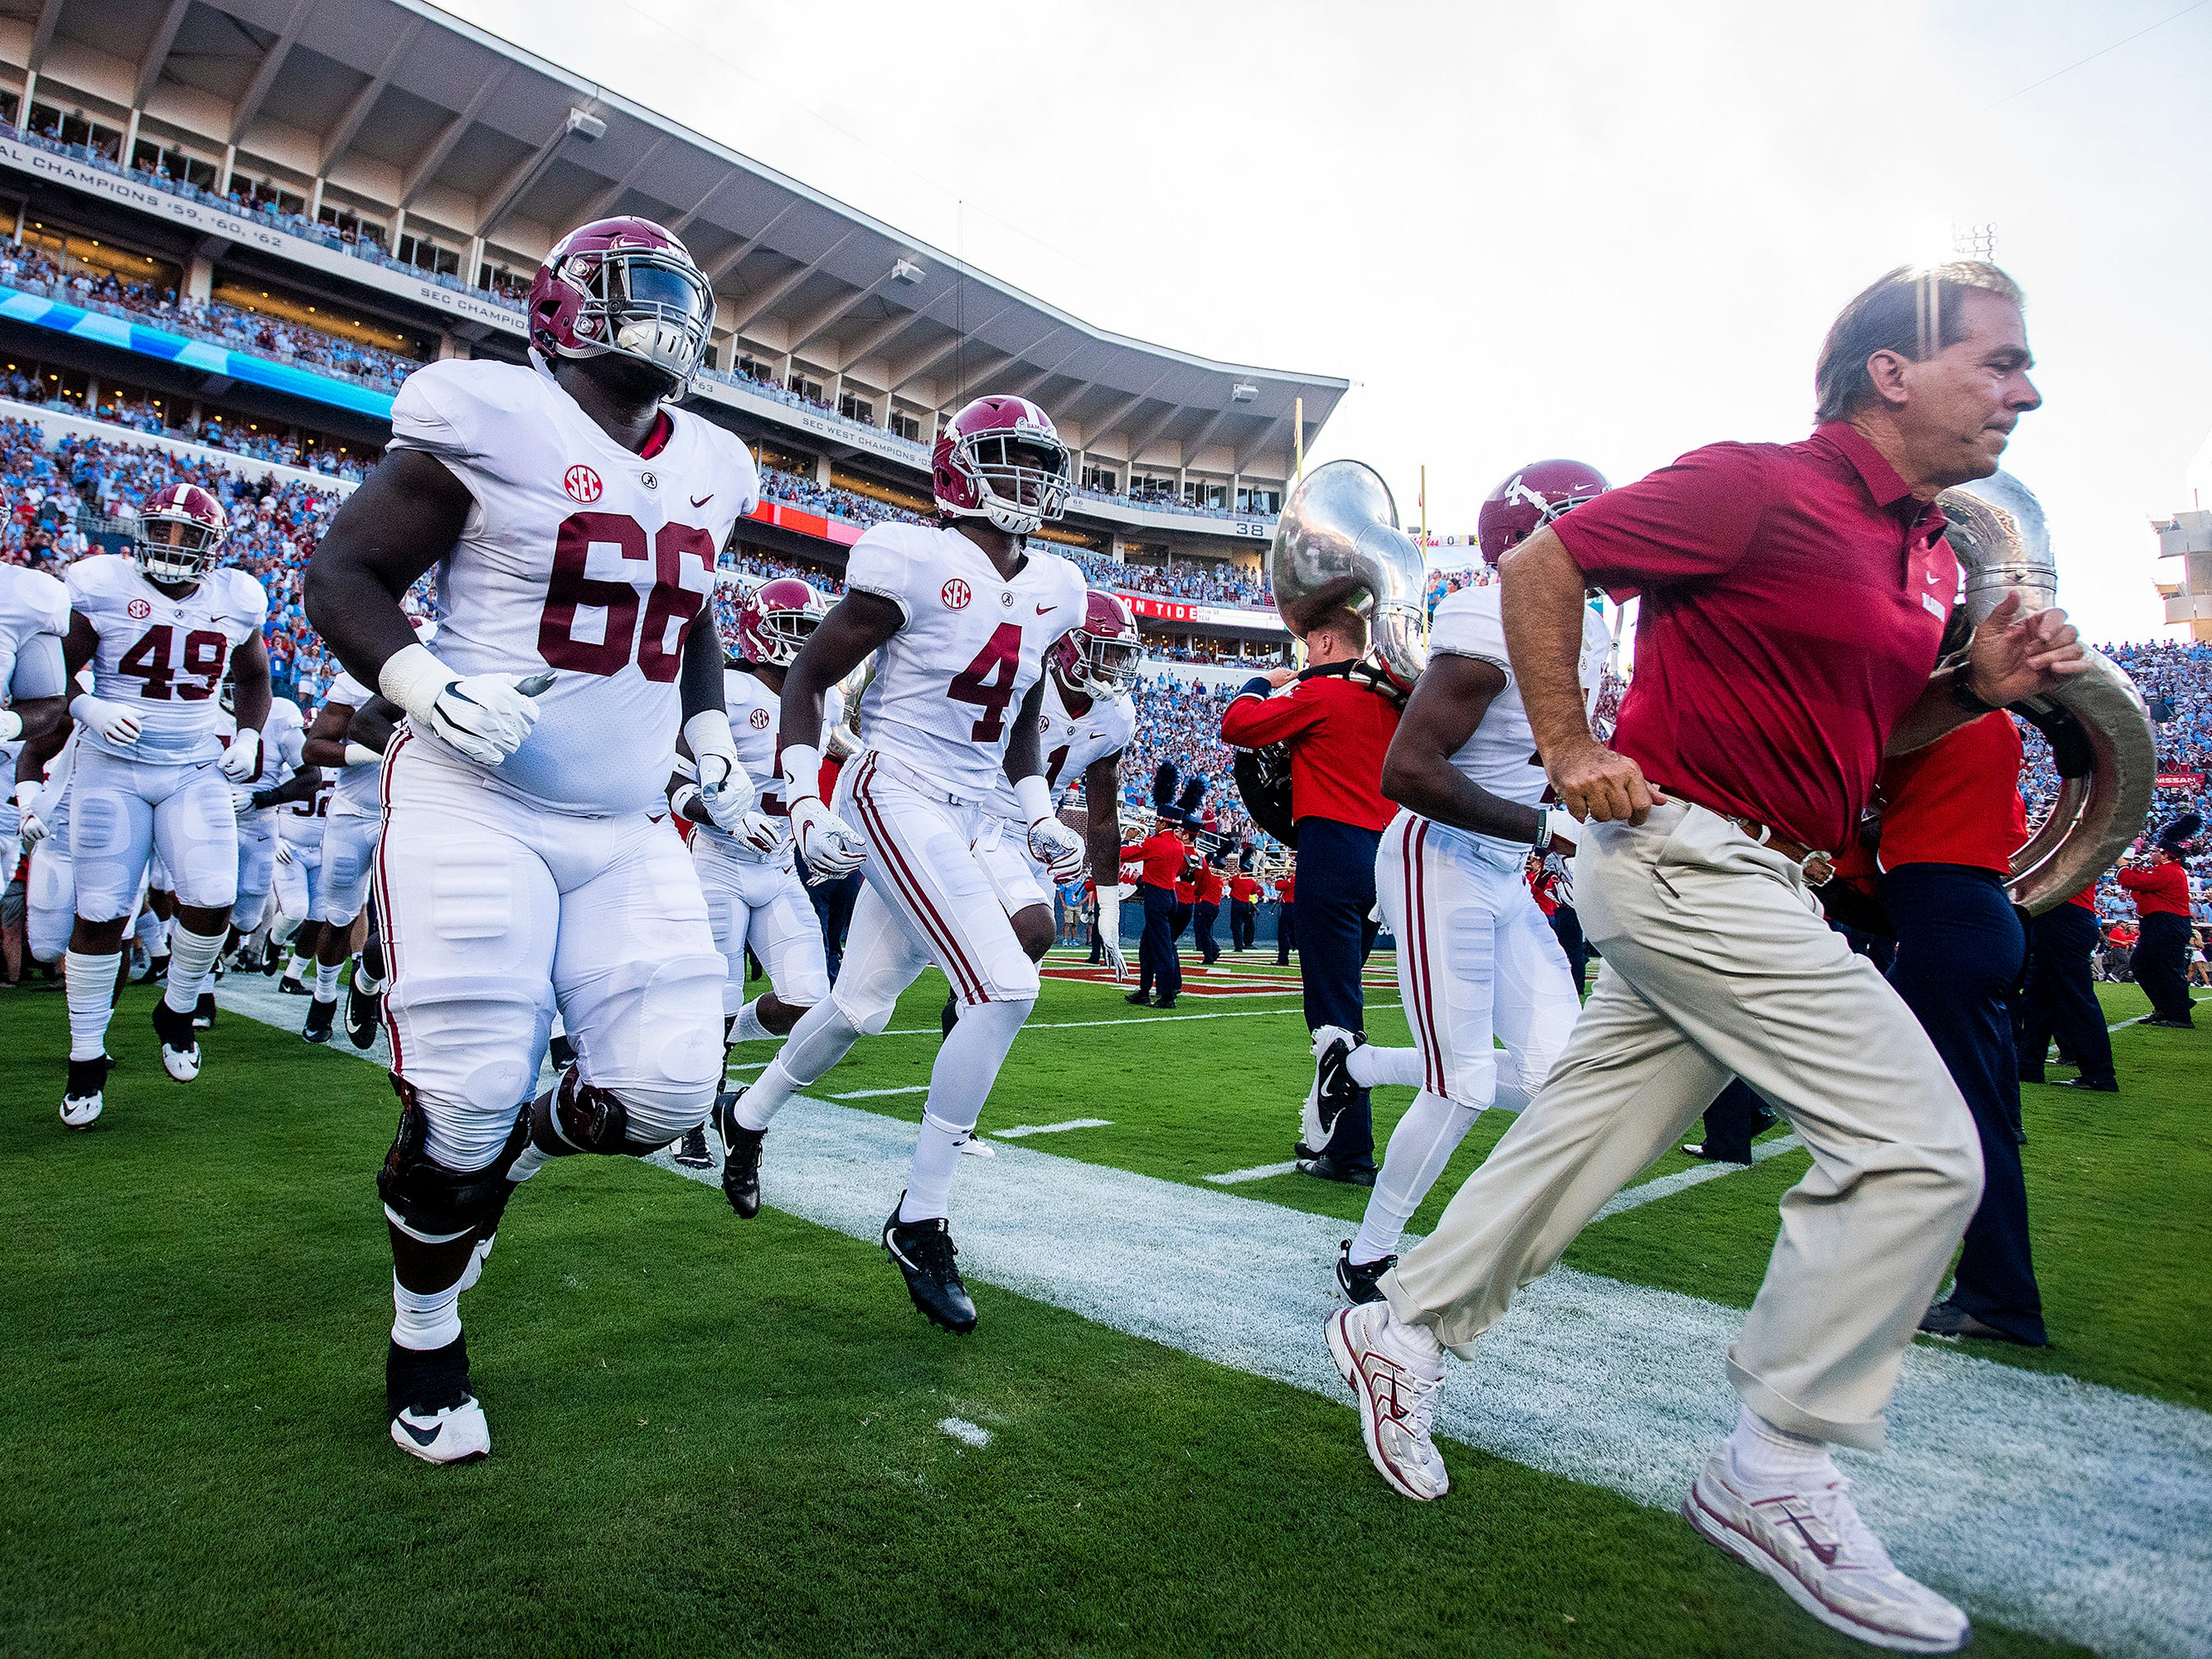 Alabama head coach Nick Saban lead his team onto the field against Ole Miss in Oxford, Ms., on Saturday September 15, 2018.